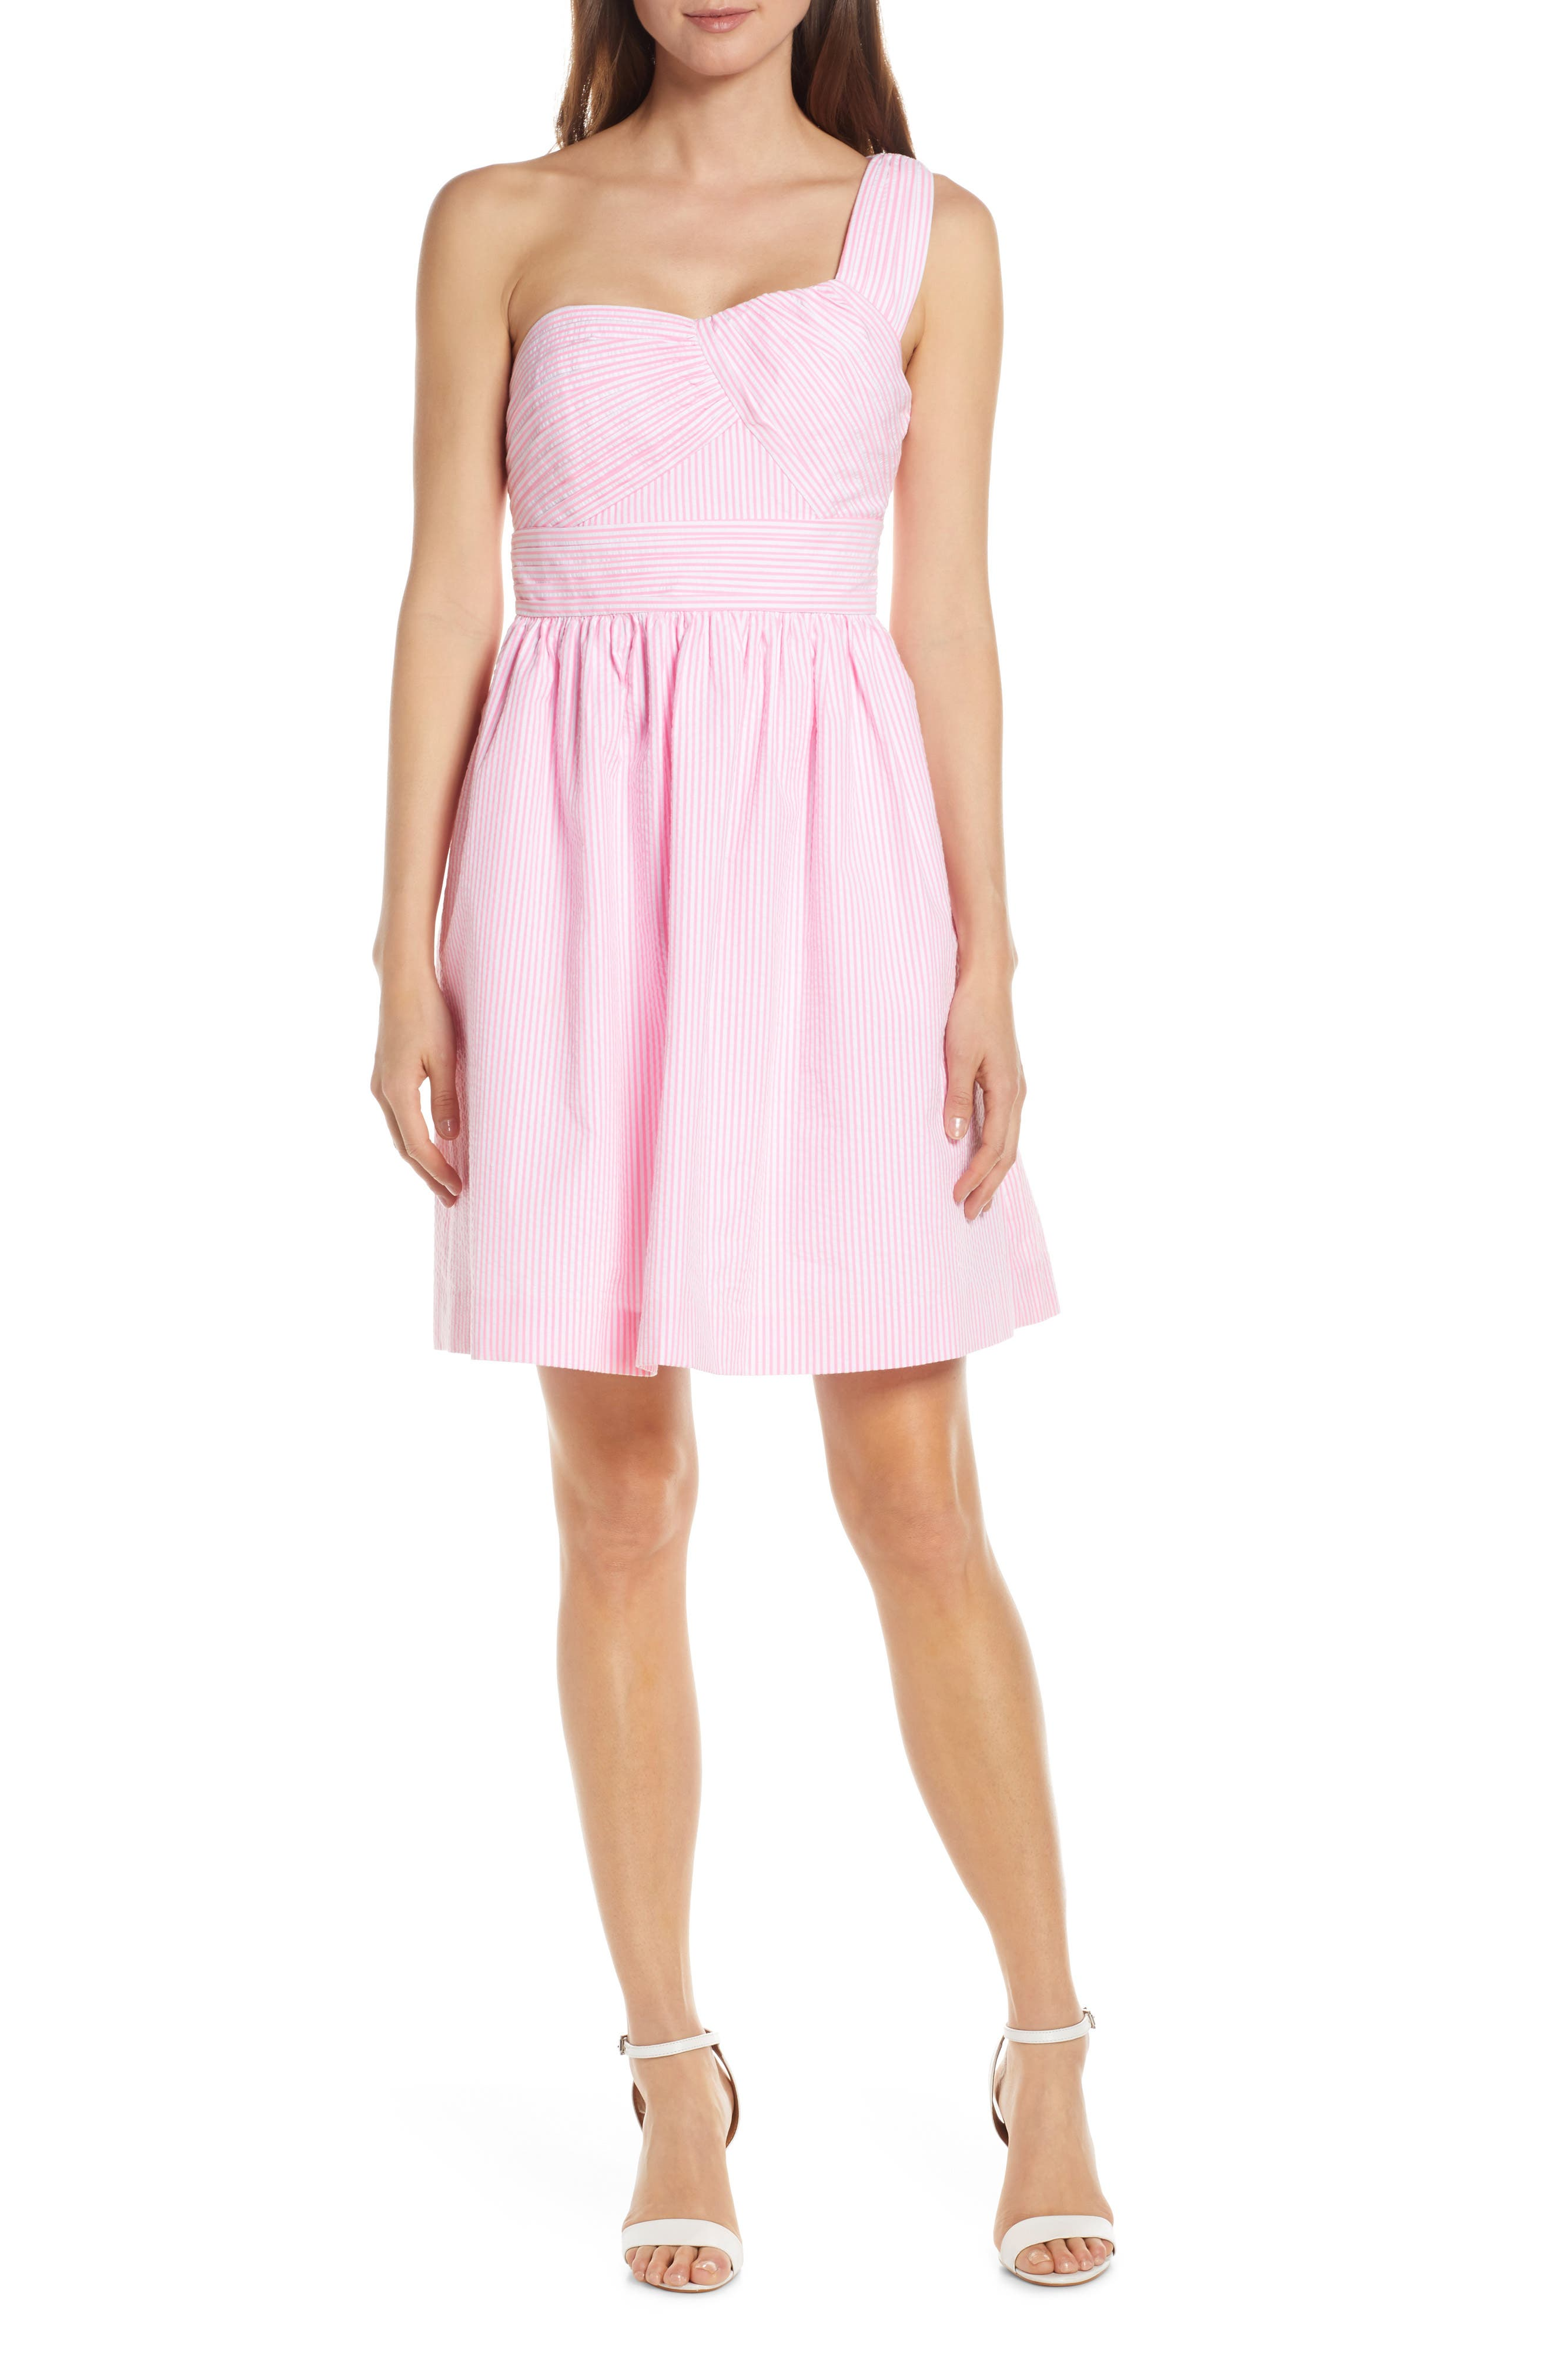 Lilly Pulitzer Addison Fit & Flare Dress, Pink